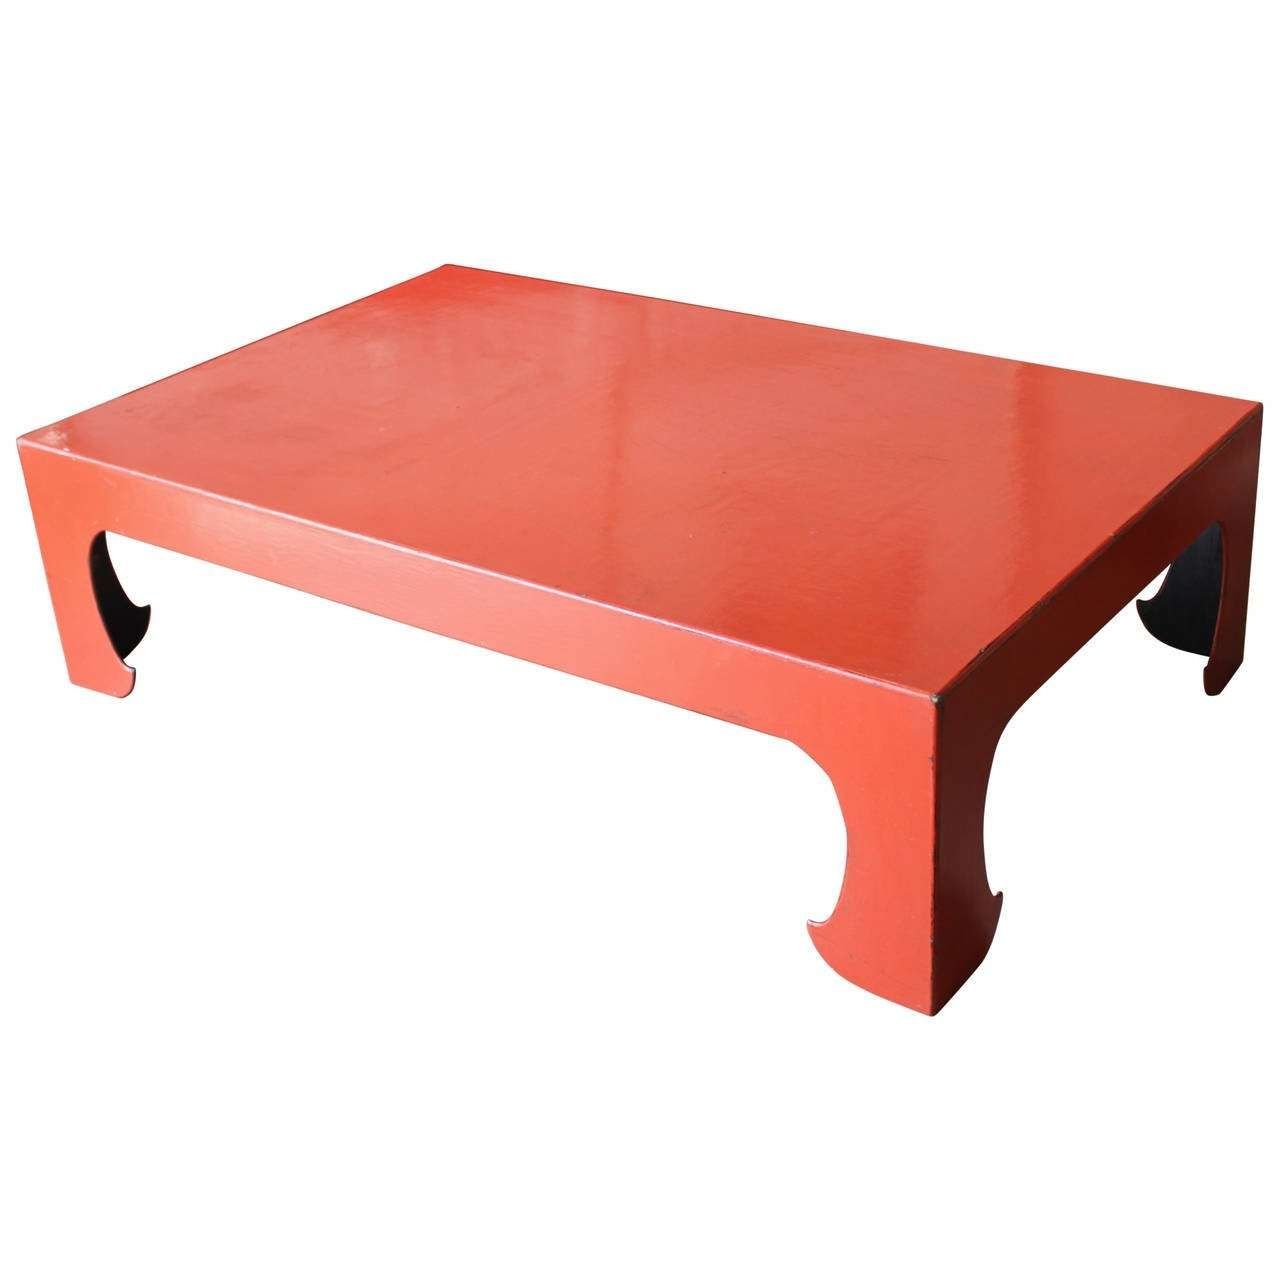 Vintage Red Coral Lacquered Chinese Coffee Table For Sale At 1stdibs For Well Known Chinese Coffee Tables (View 2 of 20)